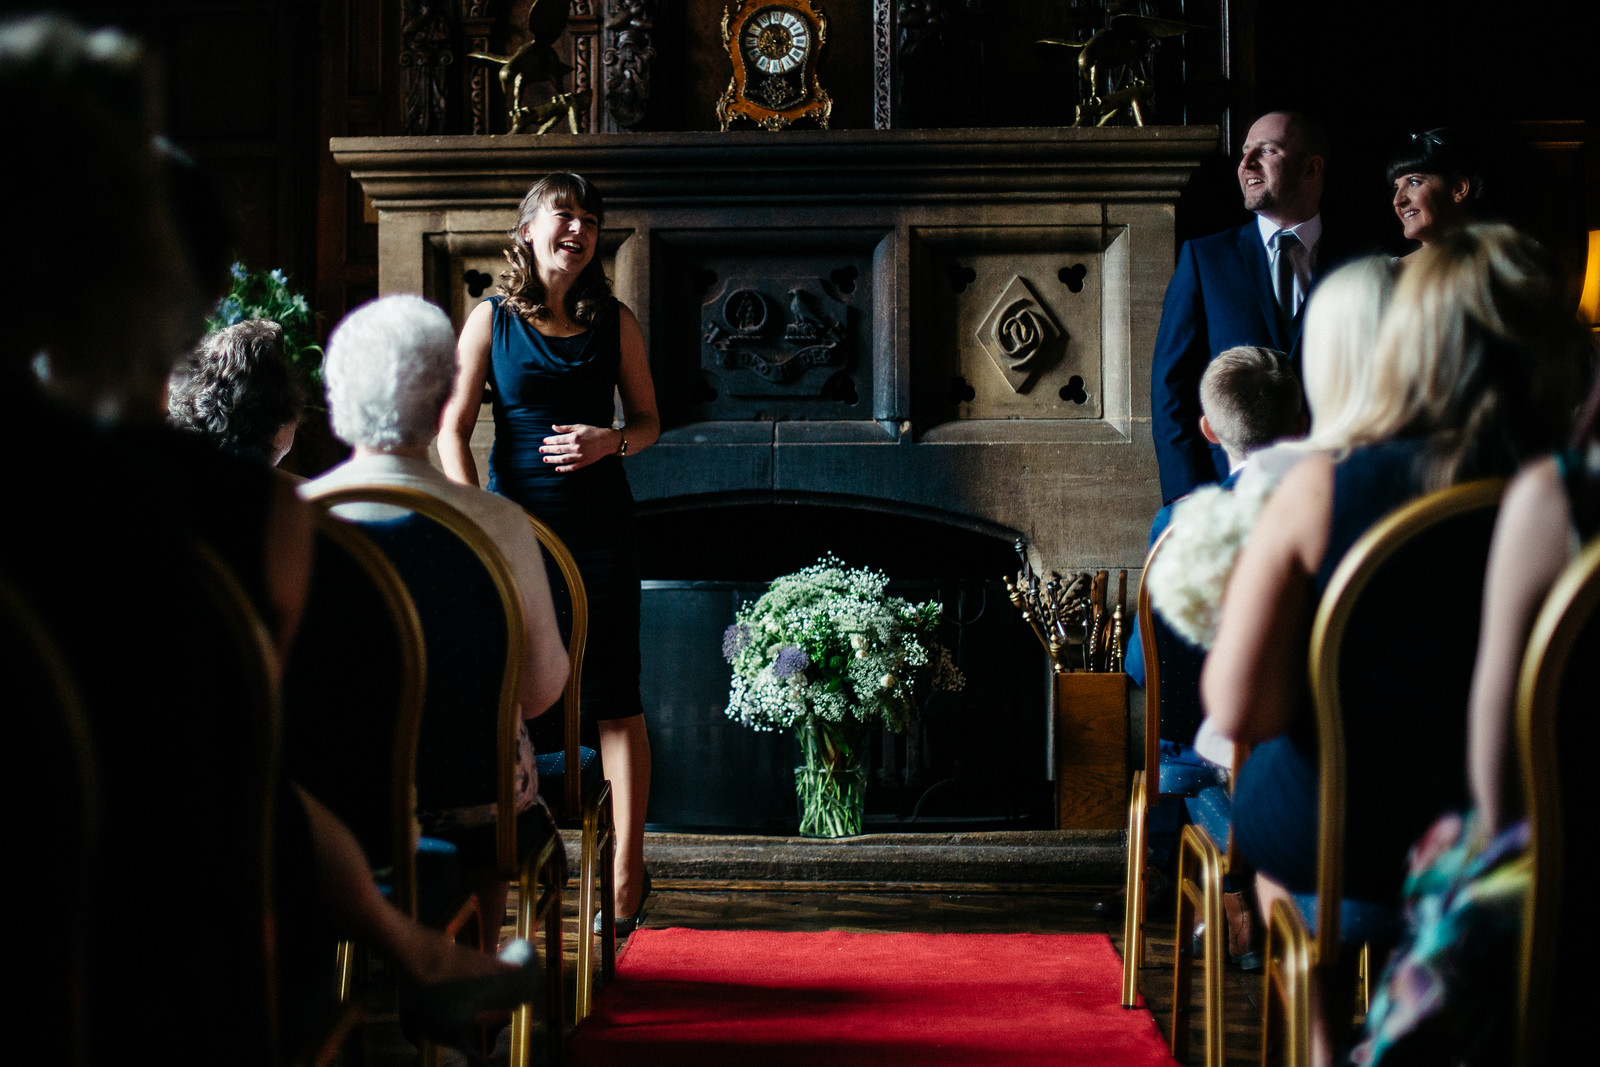 huntsham-court-wedding-ceremony-love